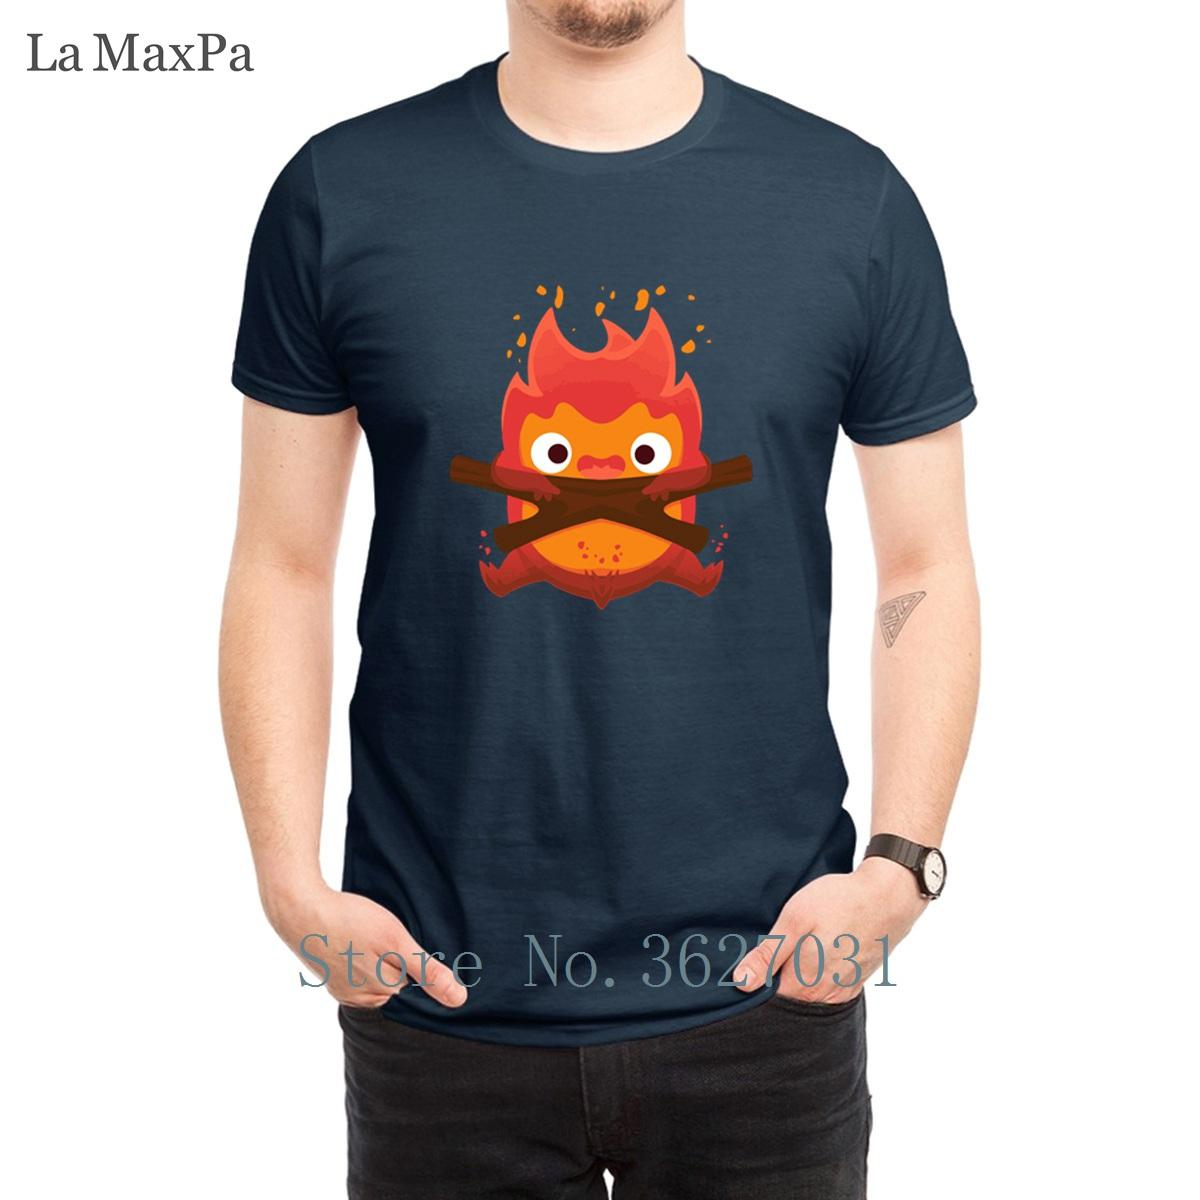 Заказные Досуг Футболки мужские The Fire Demon T Shirt Fun Spring Tee Shirt For Mens Nice Plus Размер Menss Tee Top